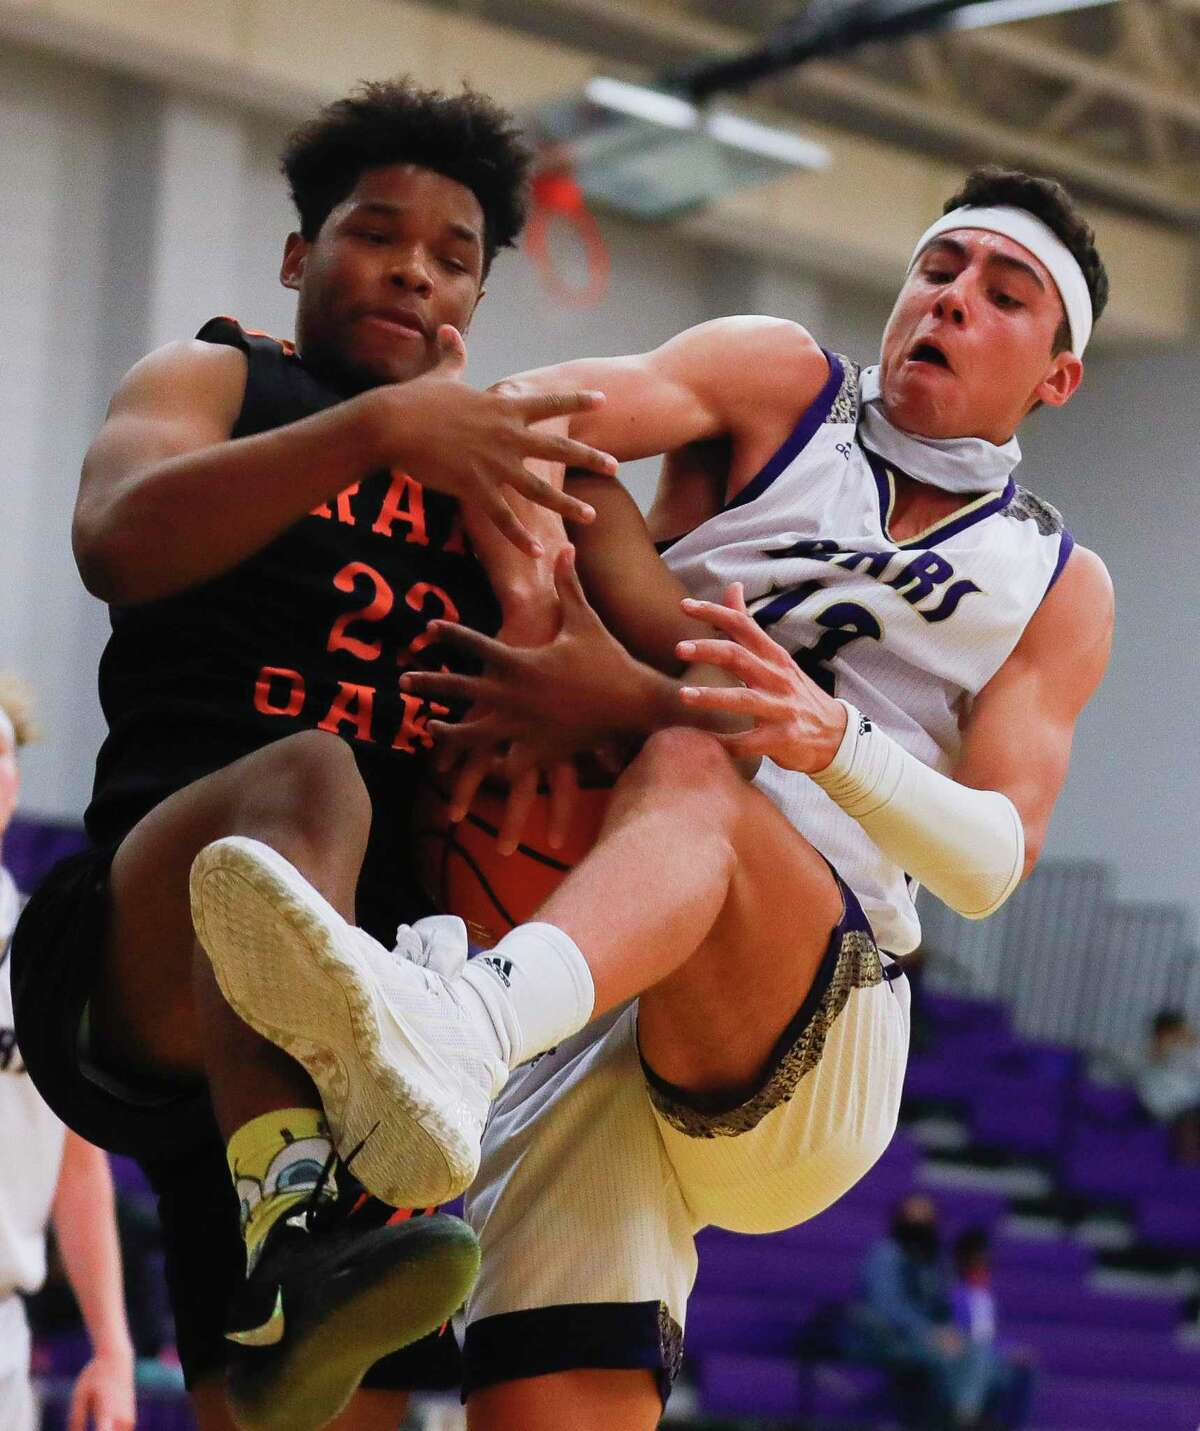 Grand Oaks forward Ian Bayombo (22) battles for a rebound against Montgomery power forward Mateo Moreno (42) during the second quarter of a non-district high school basketball game at Montgomery High School, Saturday, Dec. 5, 2020, in Montgomery.